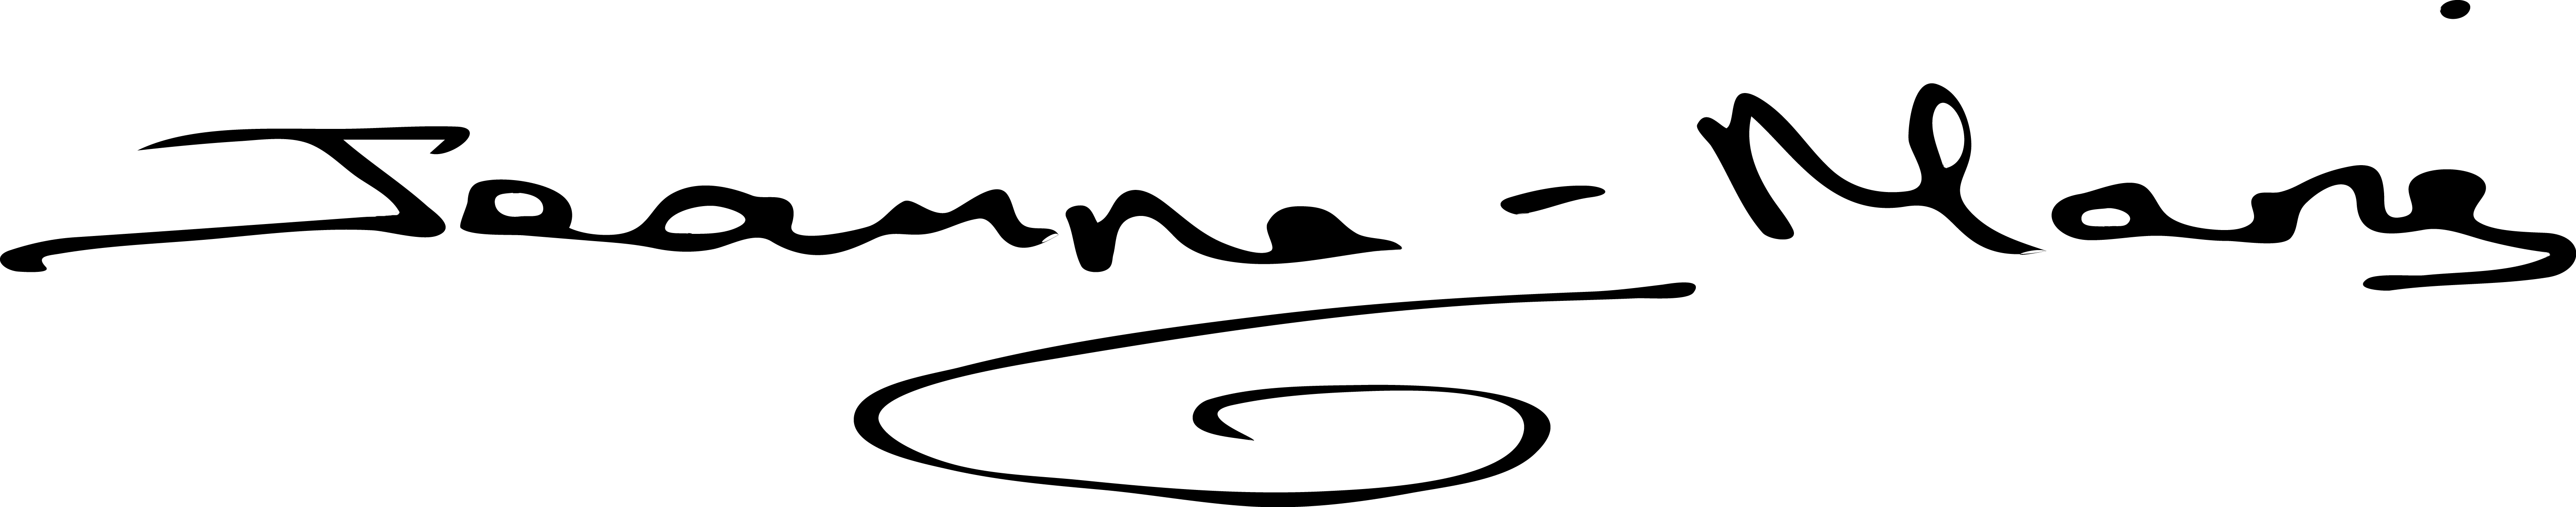 Jeanne-Marie Willems-Oliver Signature